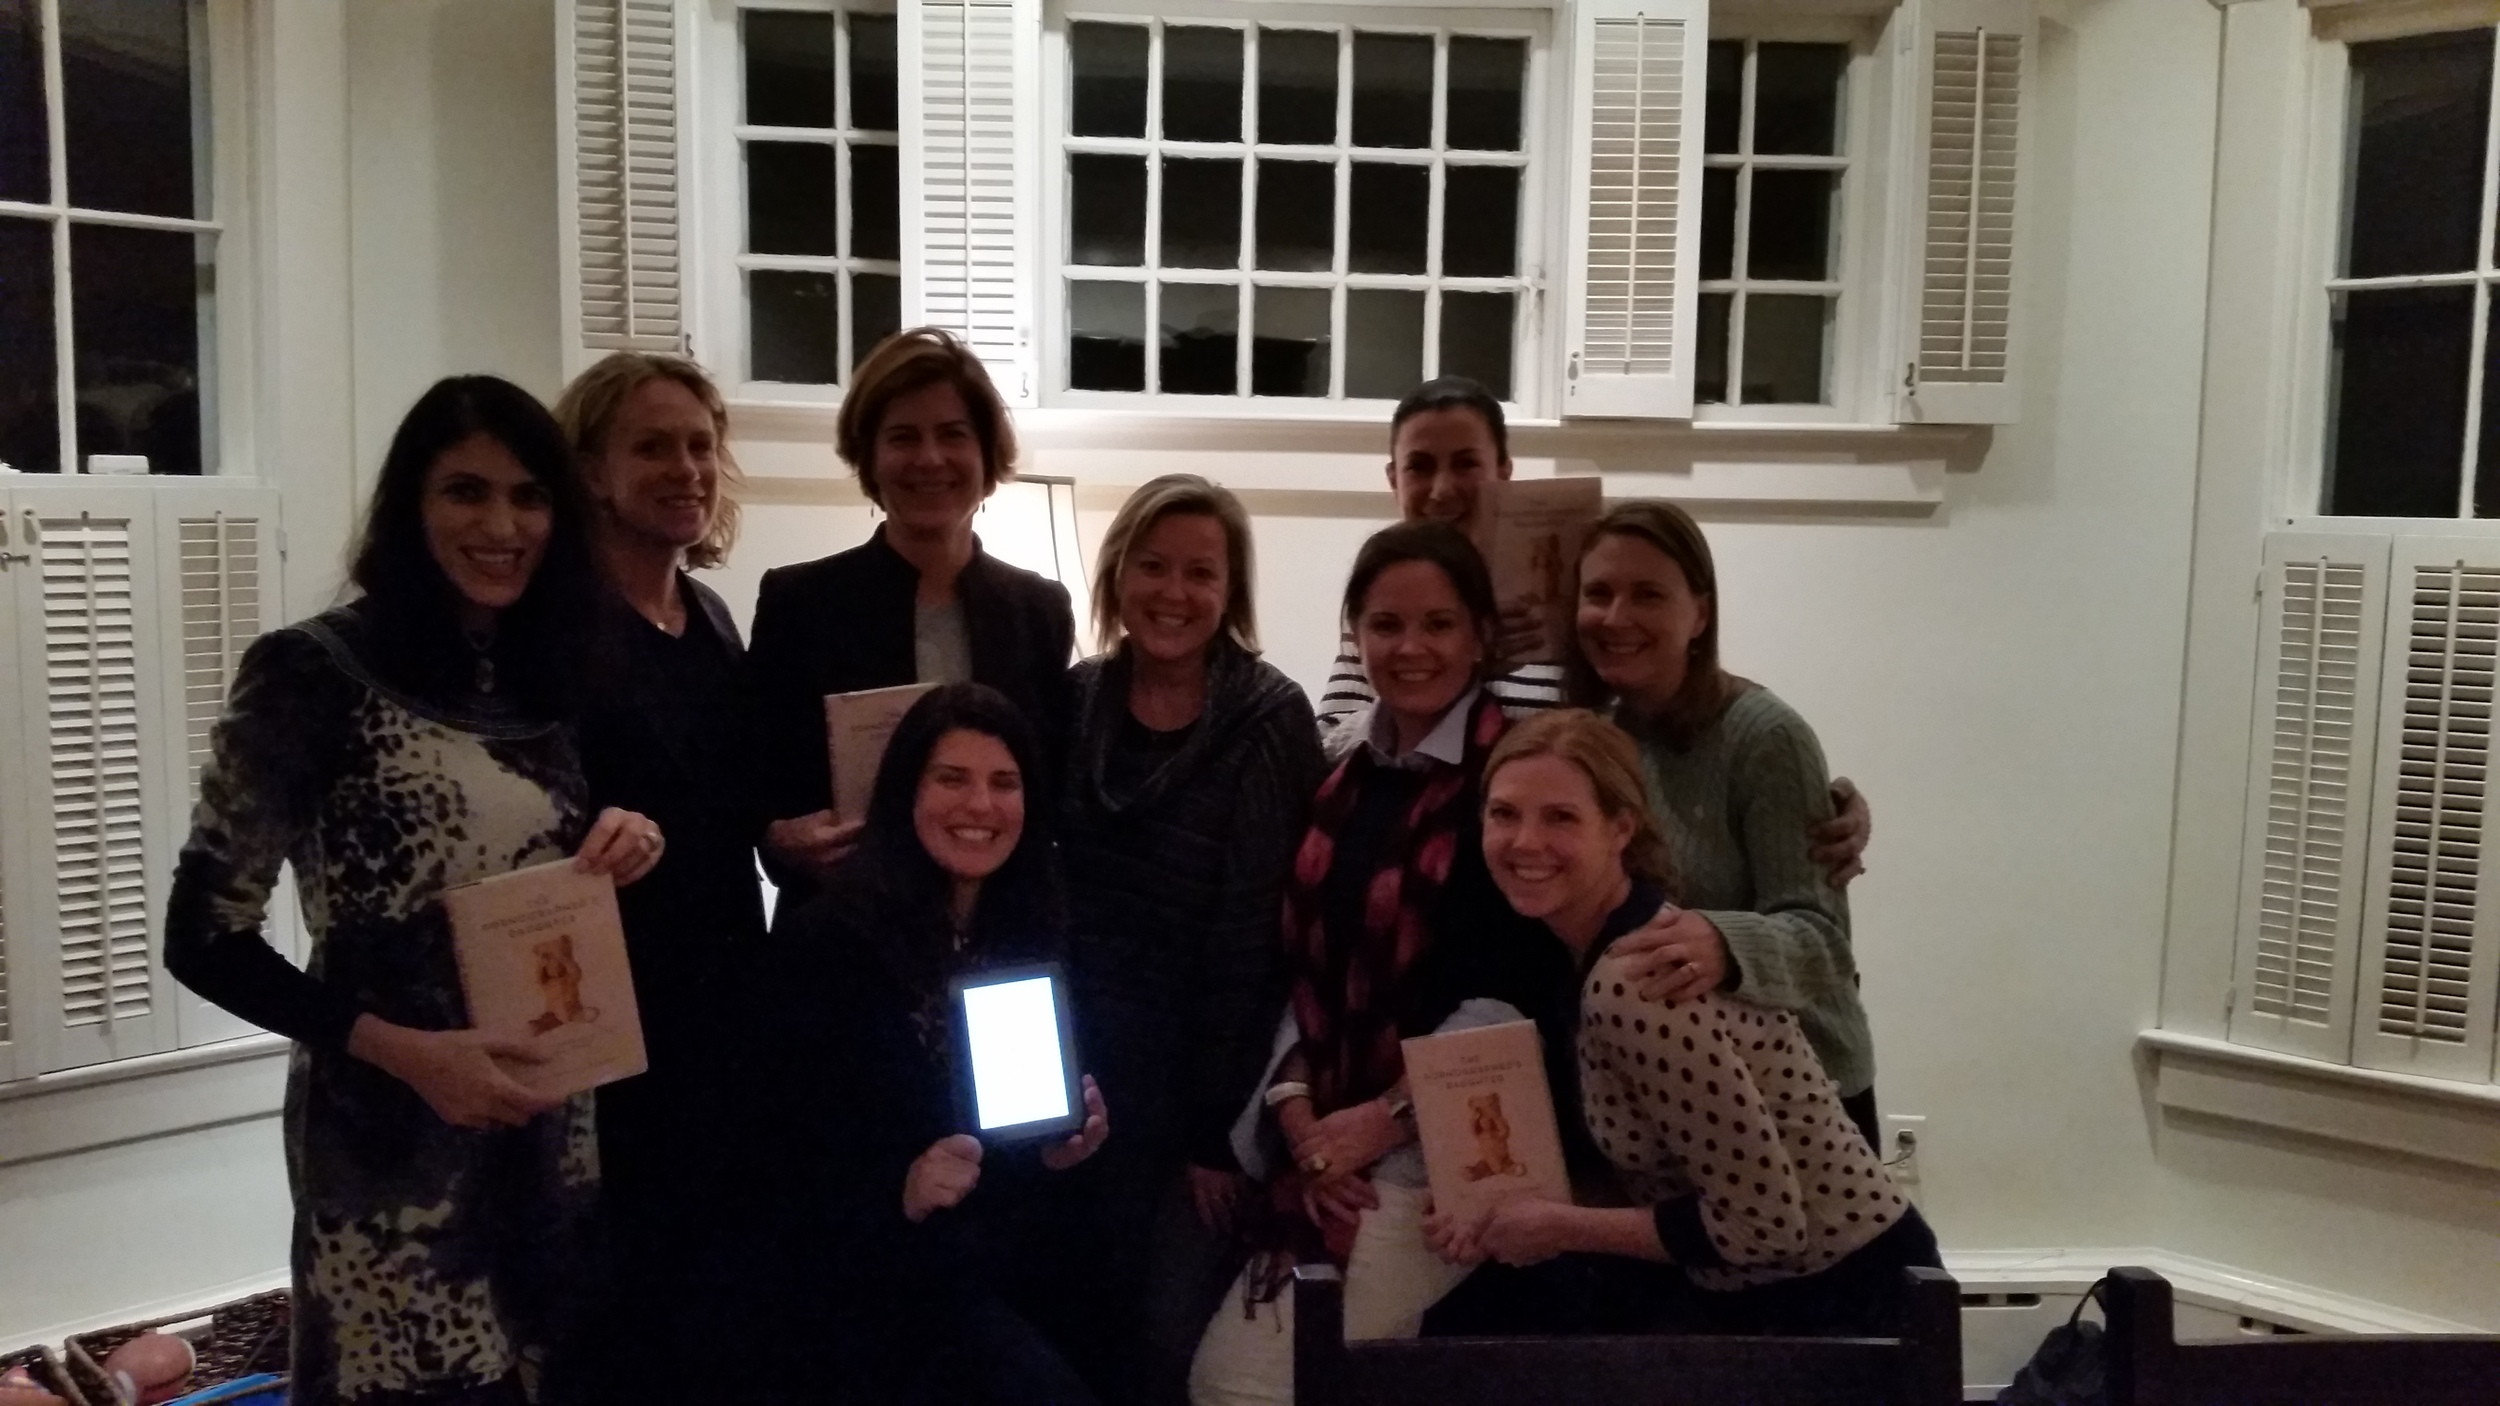 My first book club visit inthe Washington, D.C area. It was so much fun and these ladies asked some great questions!